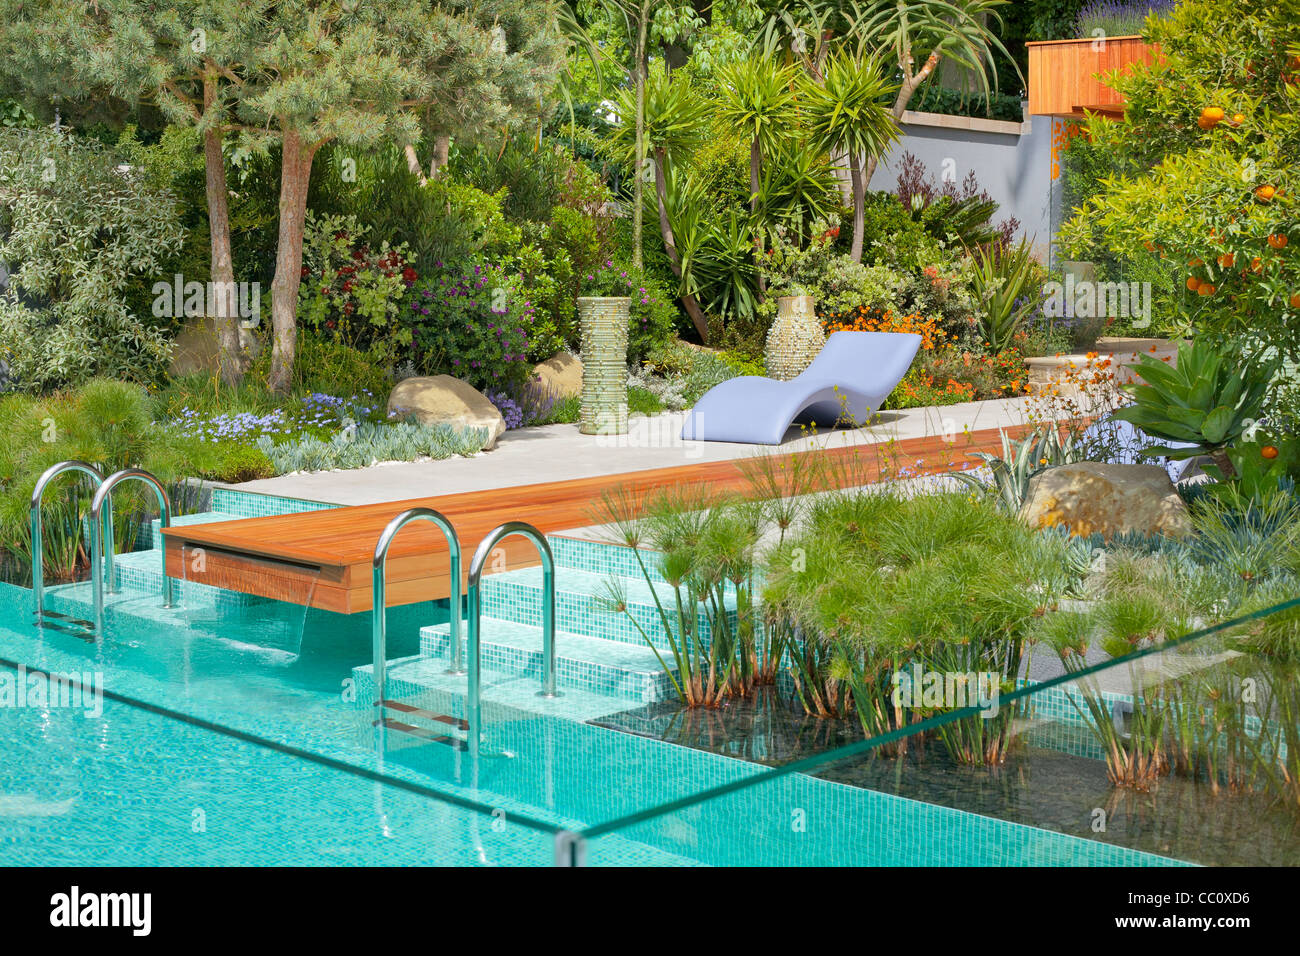 Contemporary Garden Design With A Swimming Pool In Mediterranean